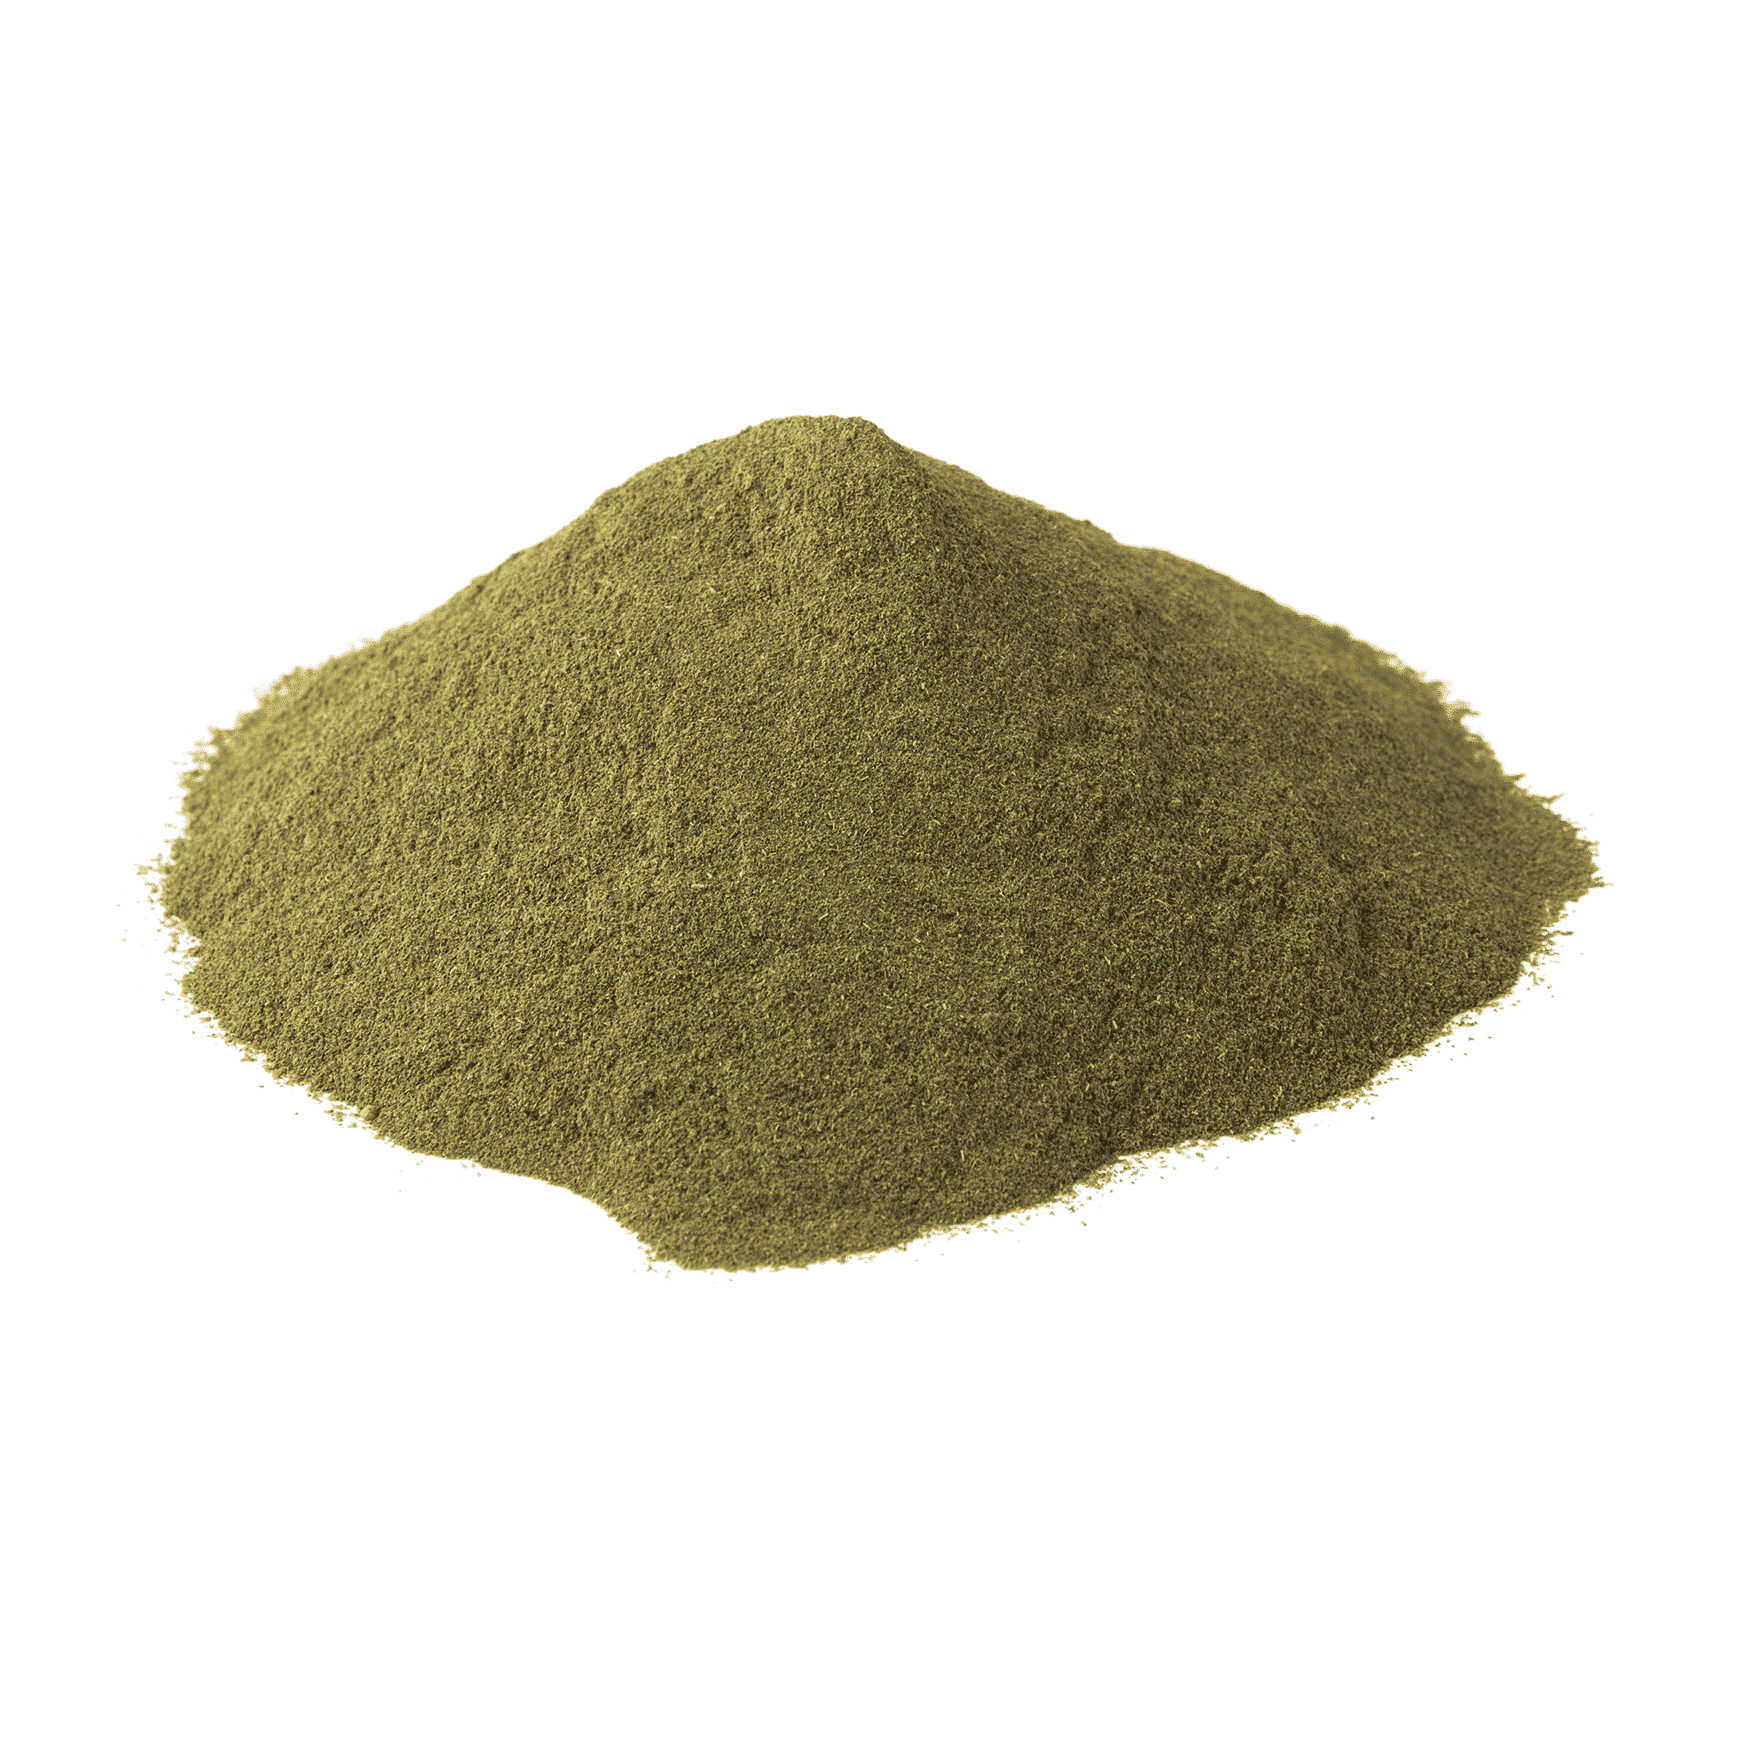 Green Vein Thai Kratom for Sale